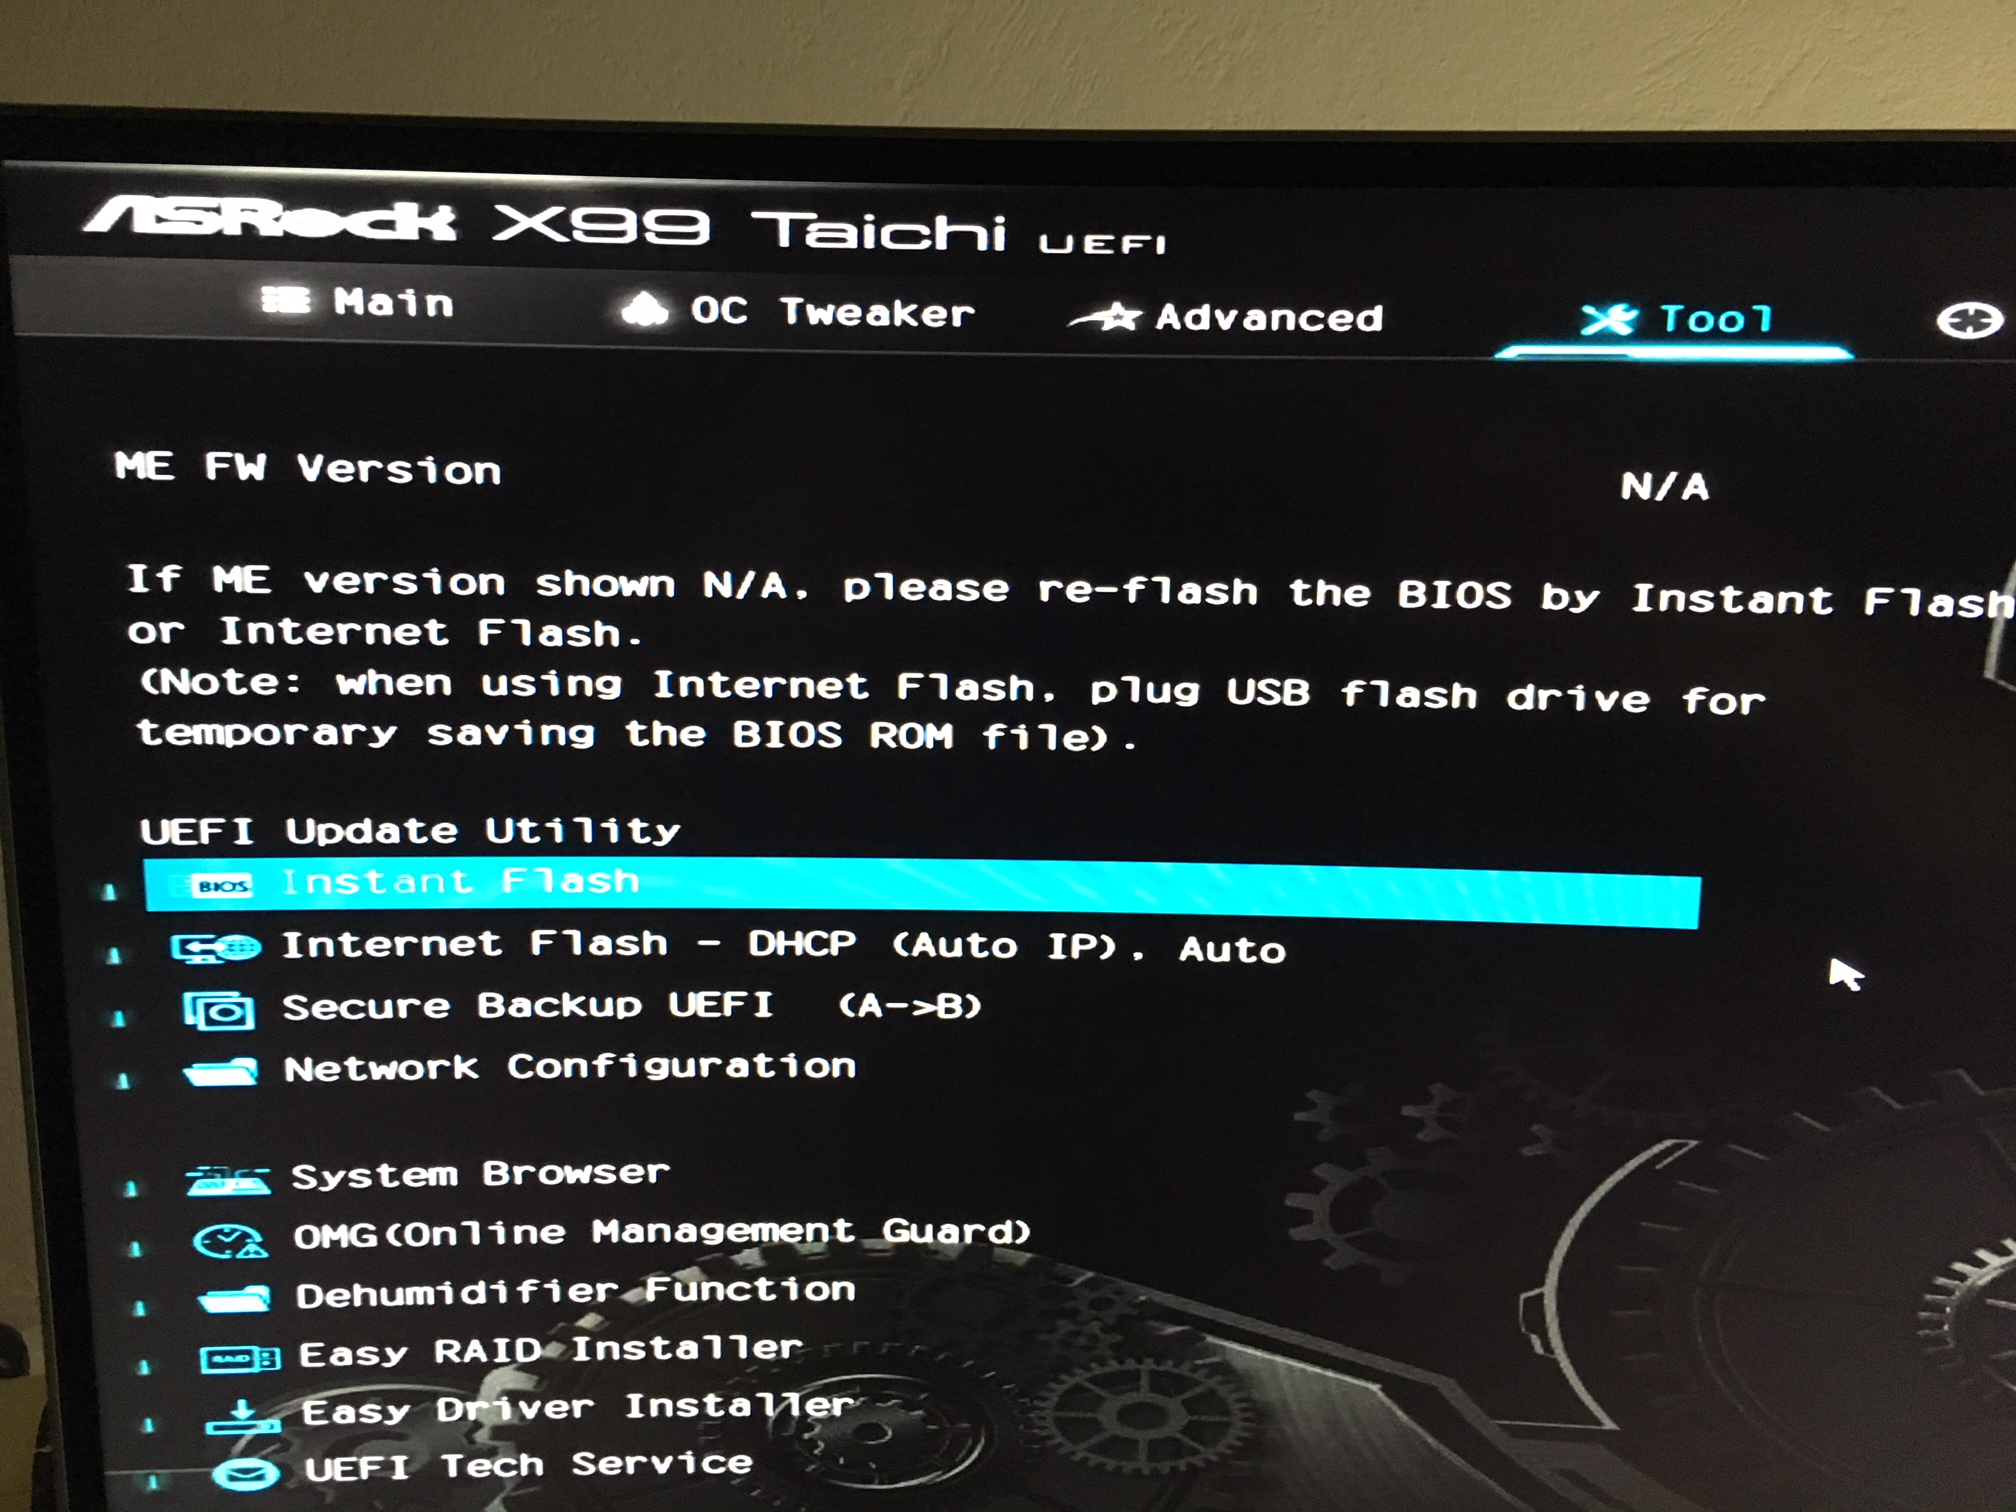 How To Use Asrock Easy Driver Installer - boolknowledge